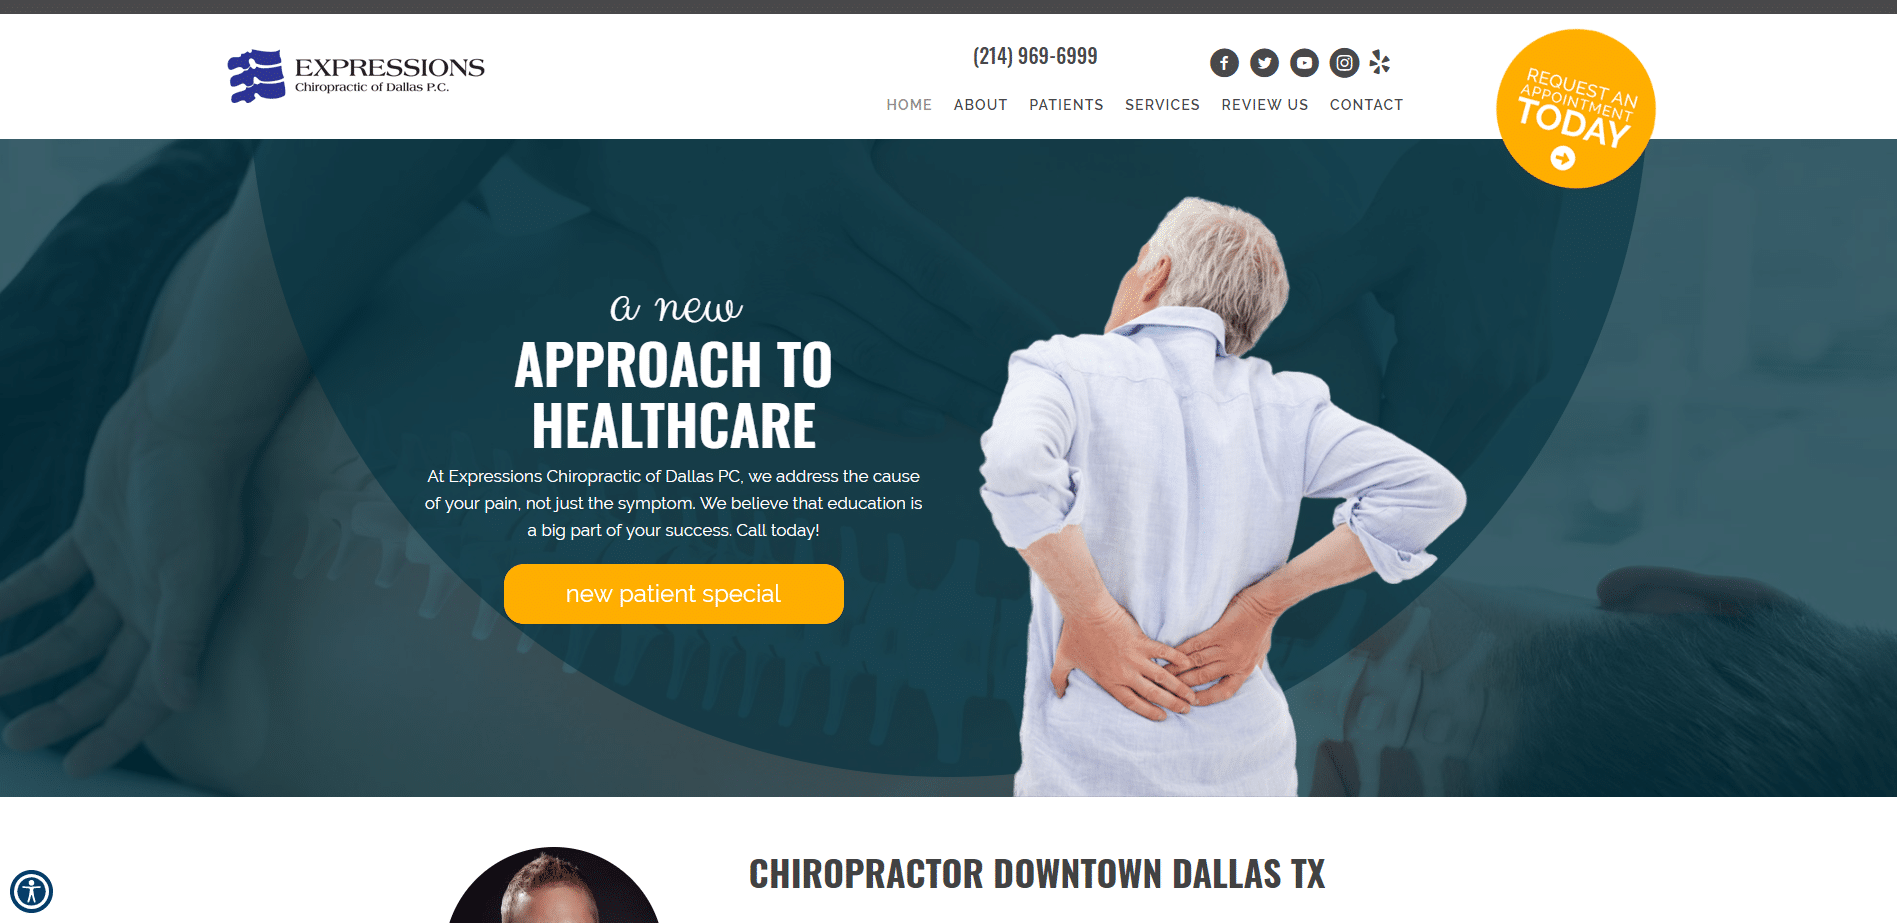 Chiropractor Dallas TX Expressions Chiropractic of Dallas P.C.